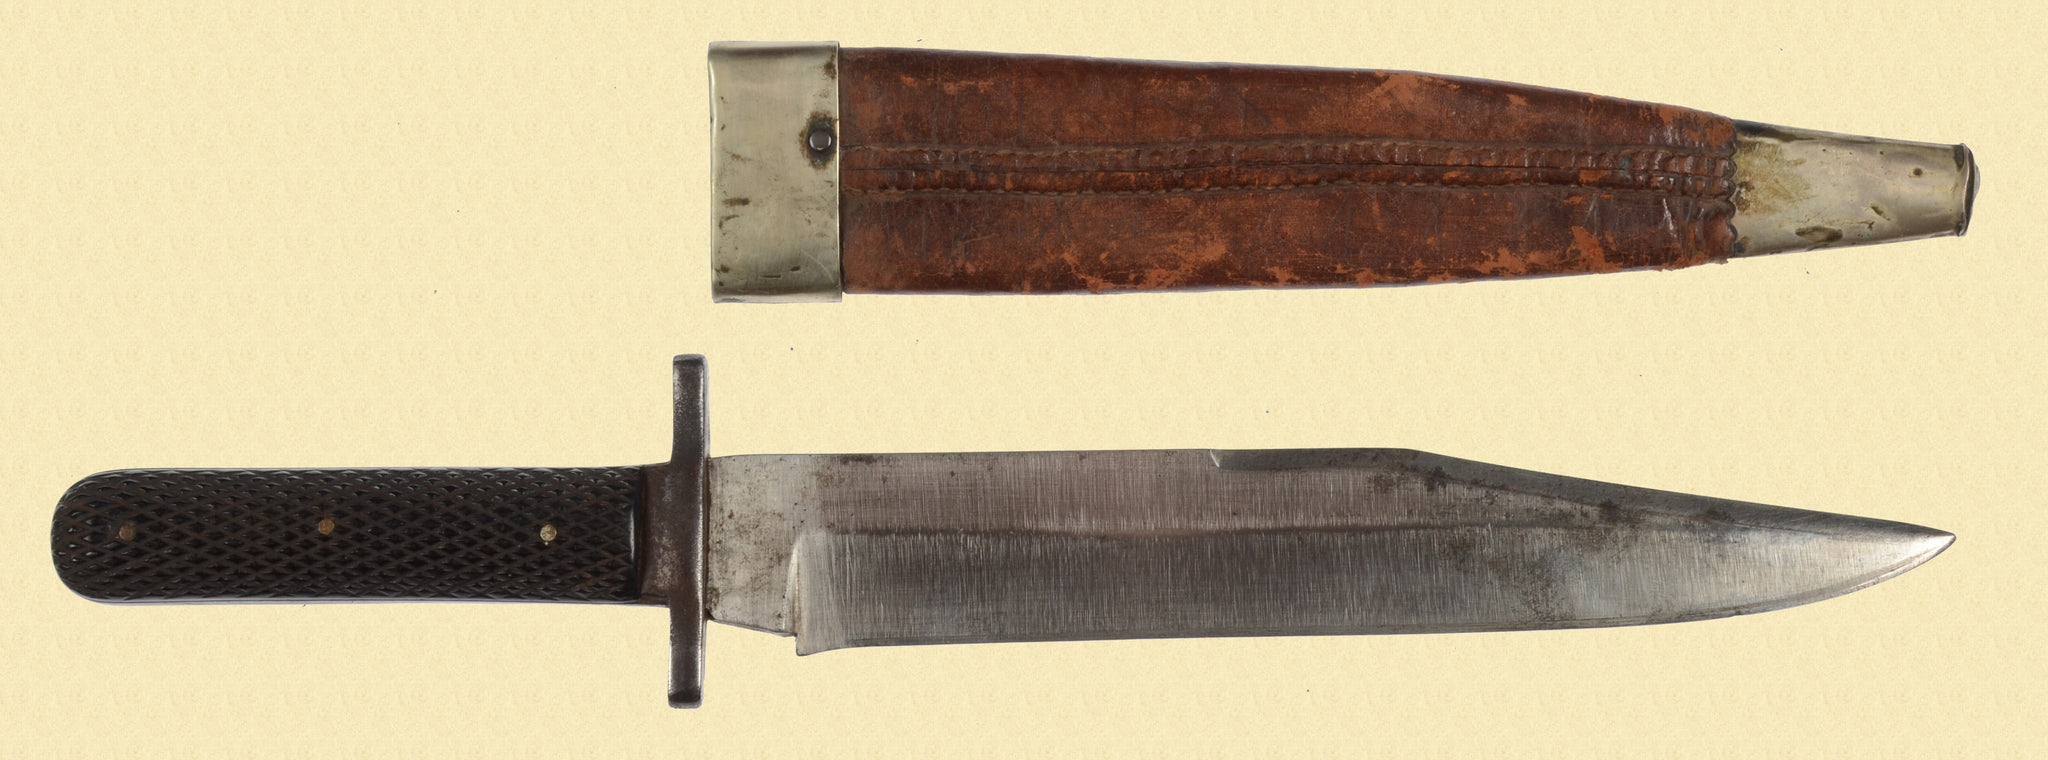 G. WOSTENHOLM & SON KNIFE